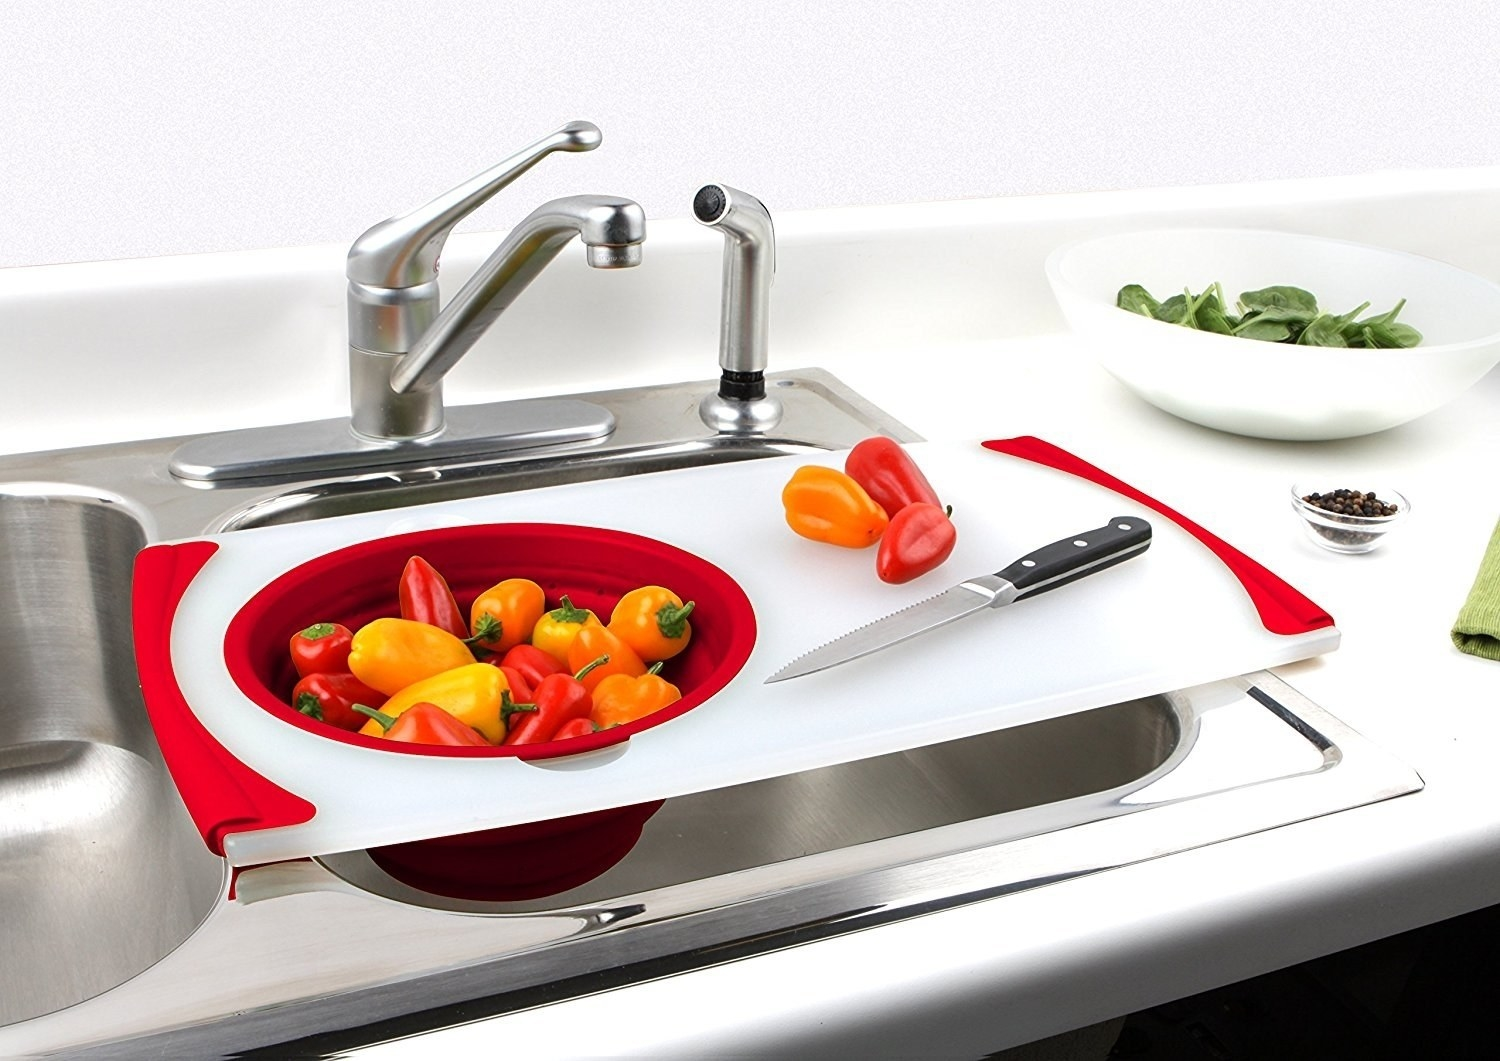 a white cutting board with red accents and a strainer set on one side of it to place over the sink for drainage